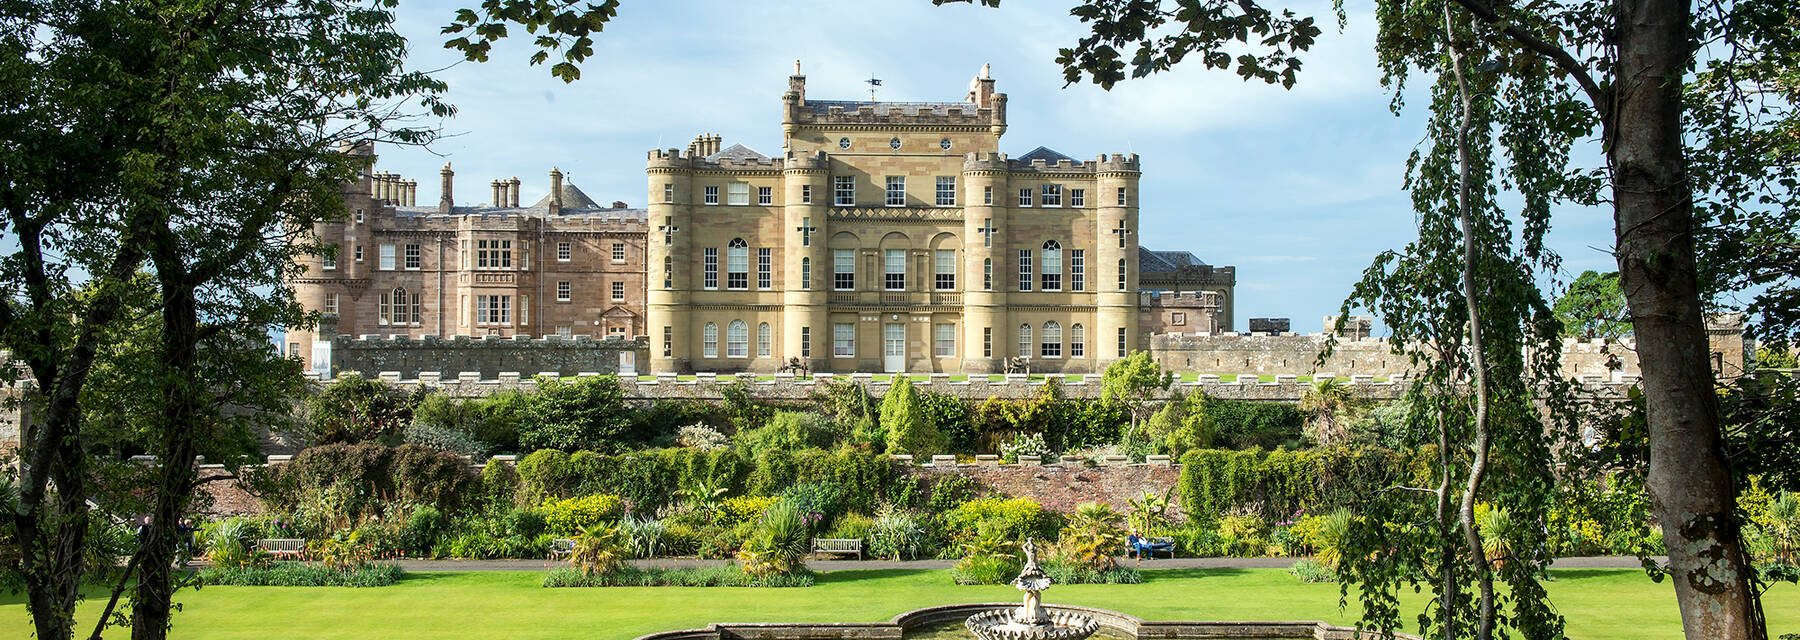 Culzean Castle in the summer, with the Fountain Court in front.